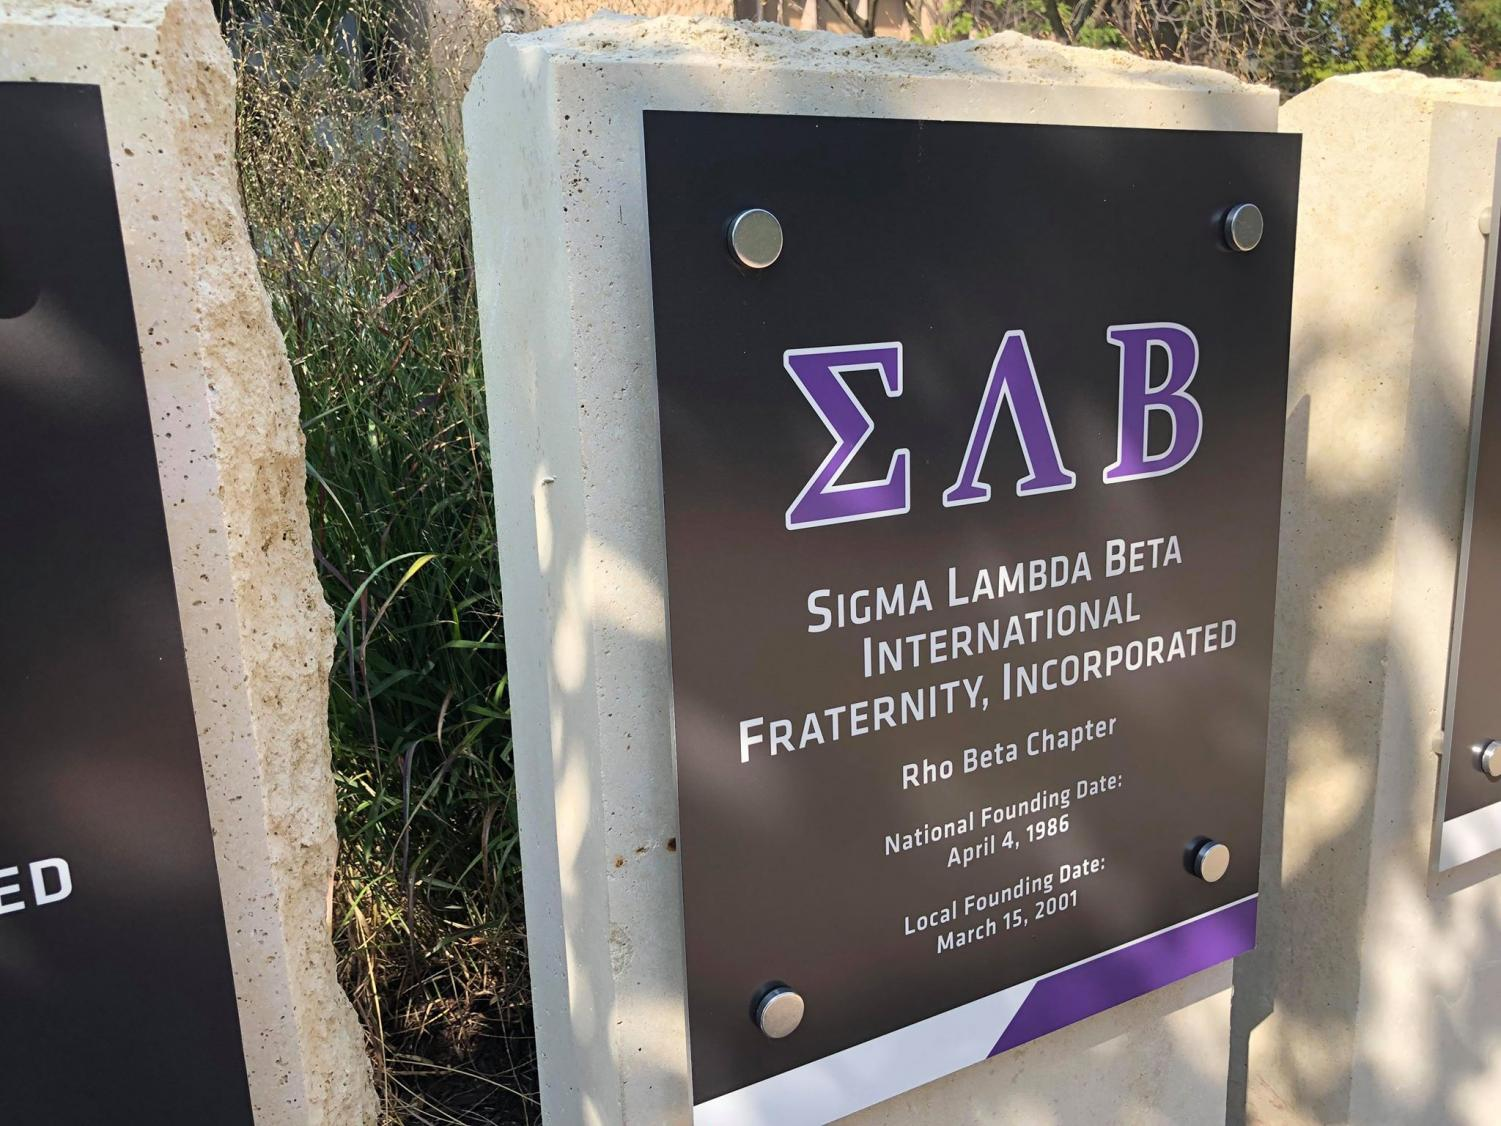 Sigma Lambda Beta's stone is located at the Multicultural Greek Council Quad in front of Clinton Hall. The fraternity said Monday it's filing a bias report after an incident over the weekend.